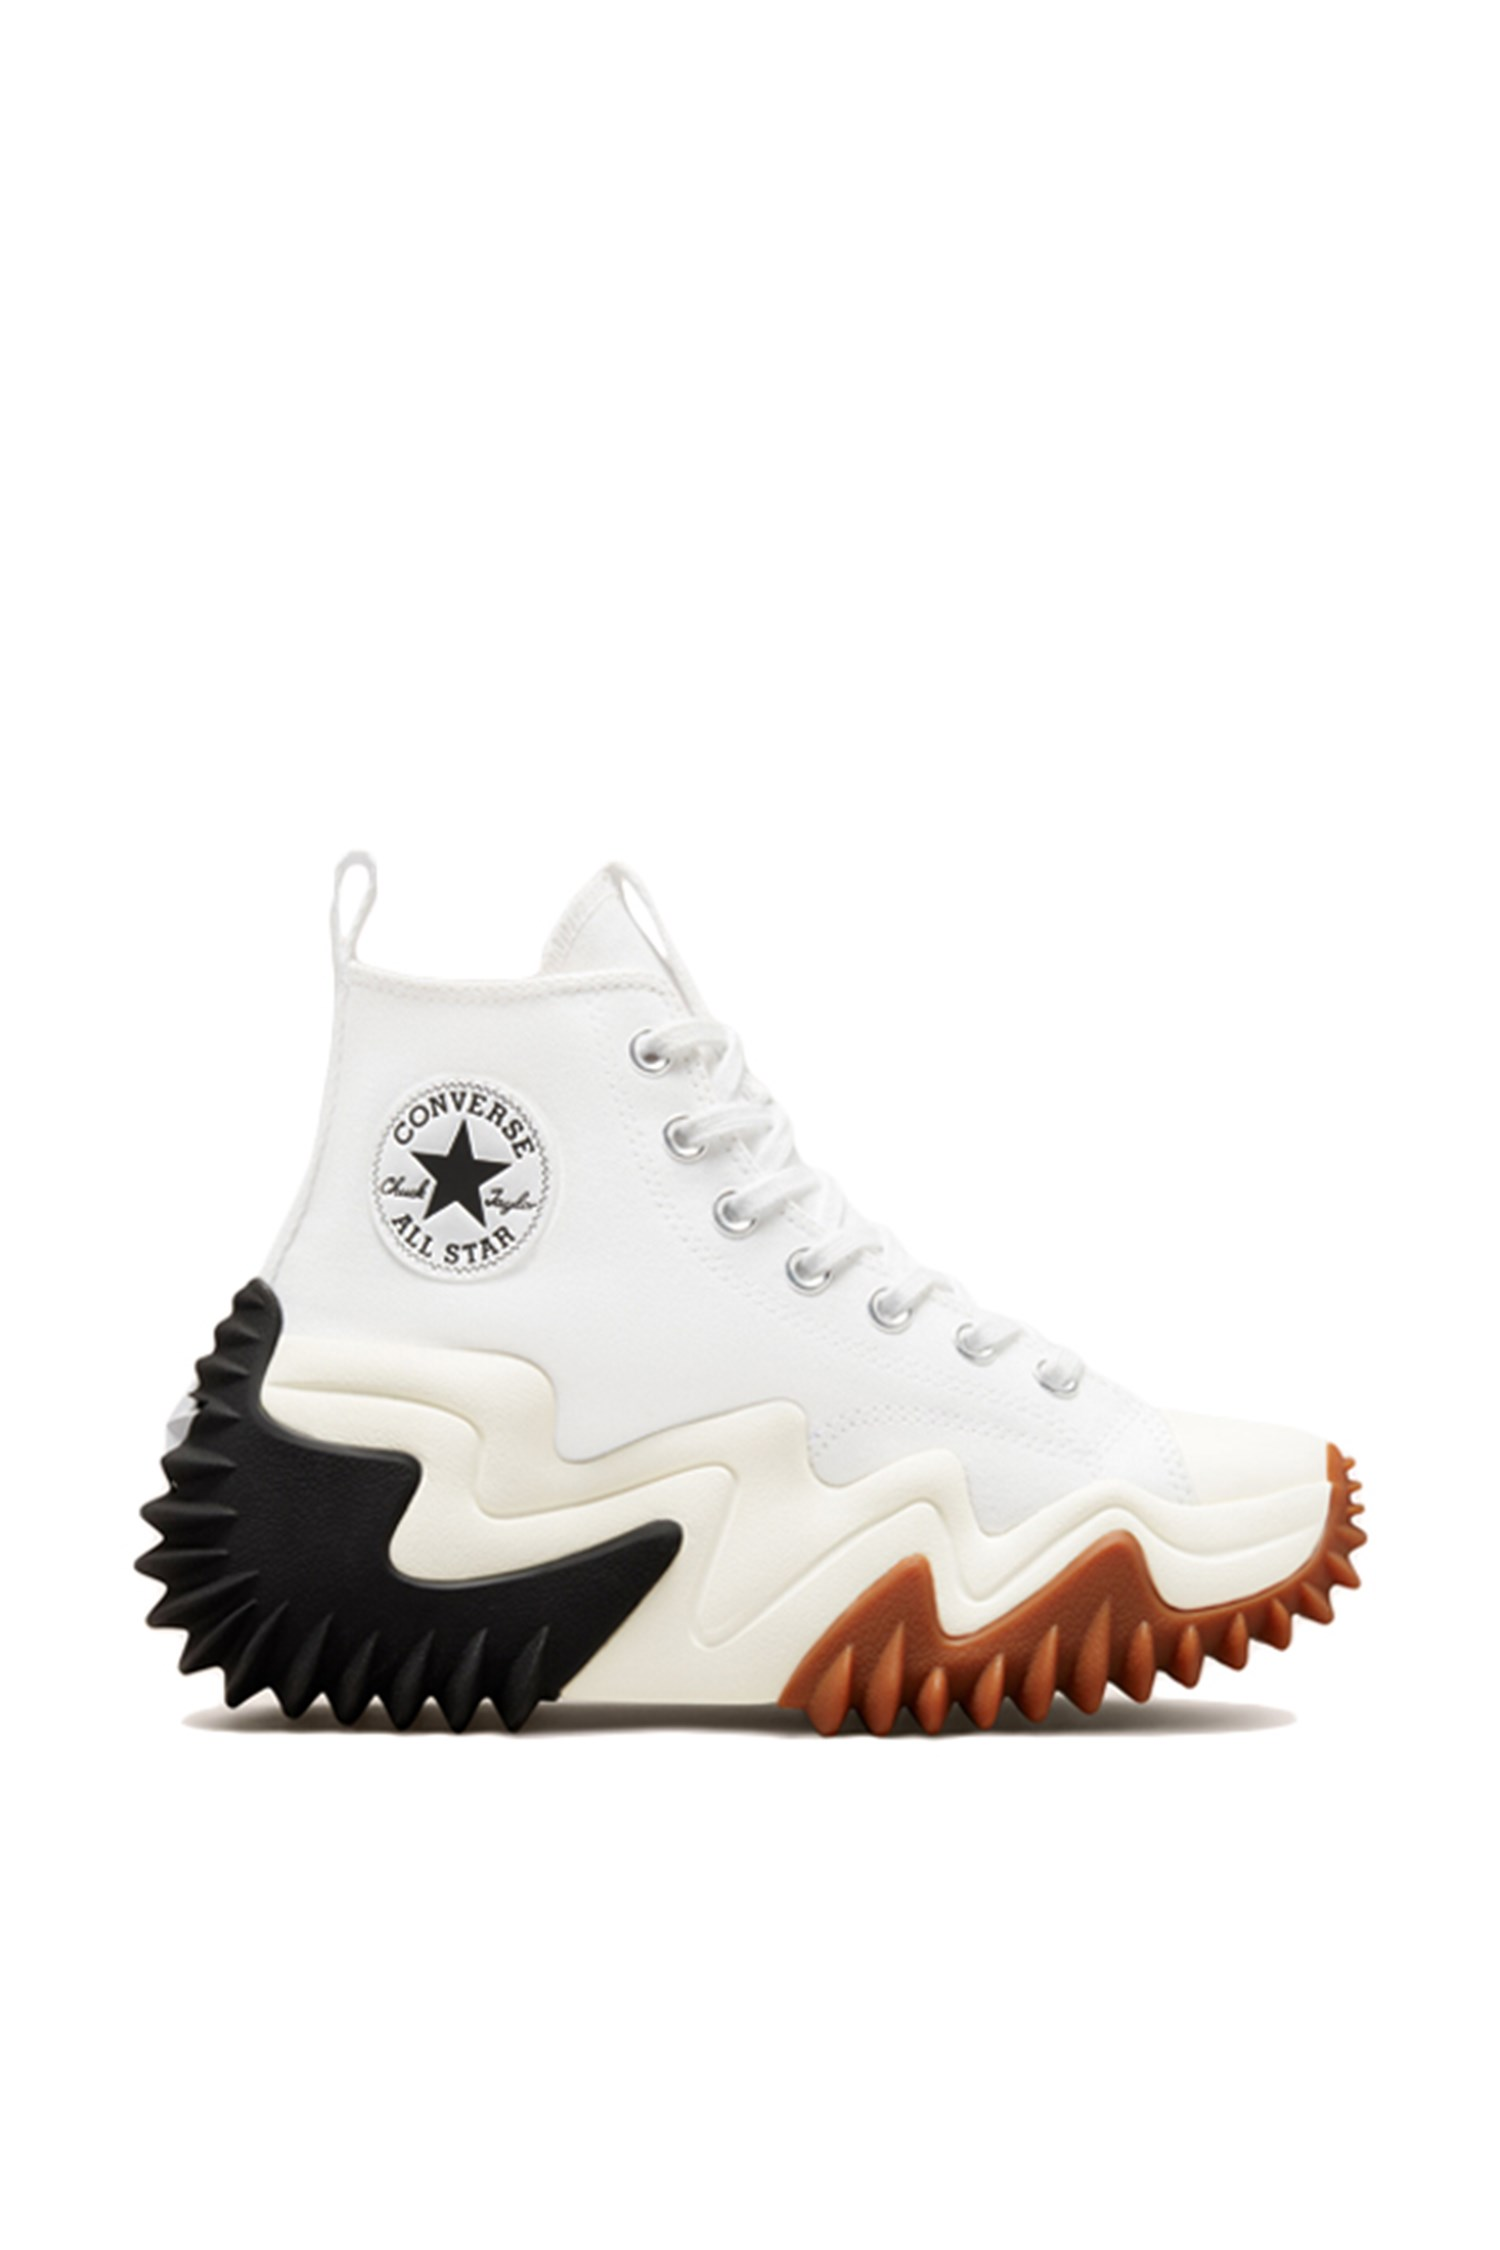 Converse Sneakers With wedge Women White / black / gum Honey